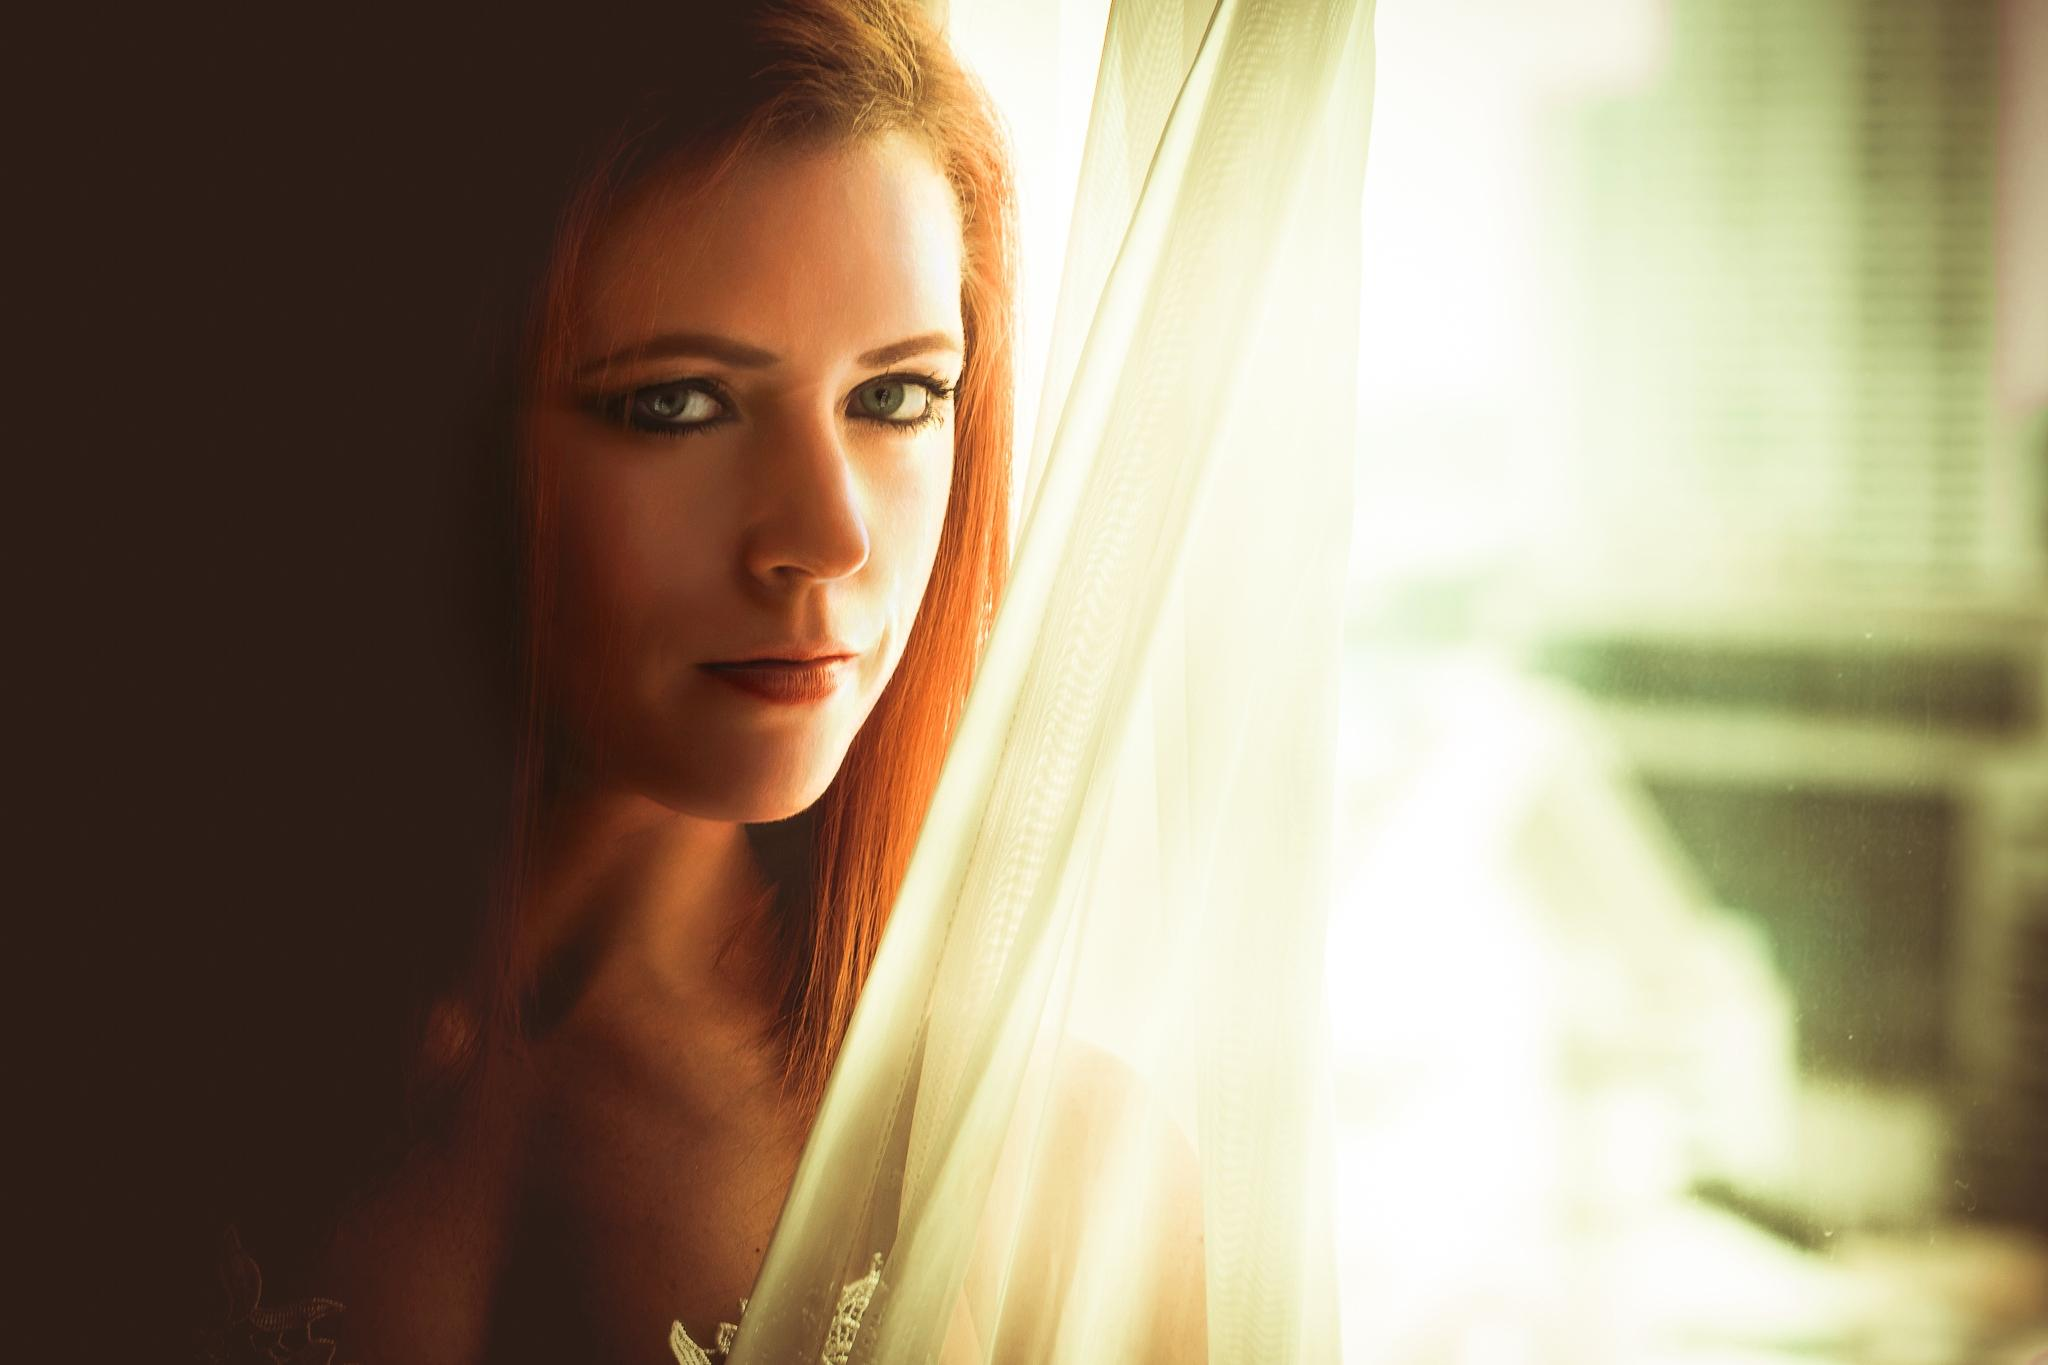 Light and shadows by Kapture - Street & Fashion Photography